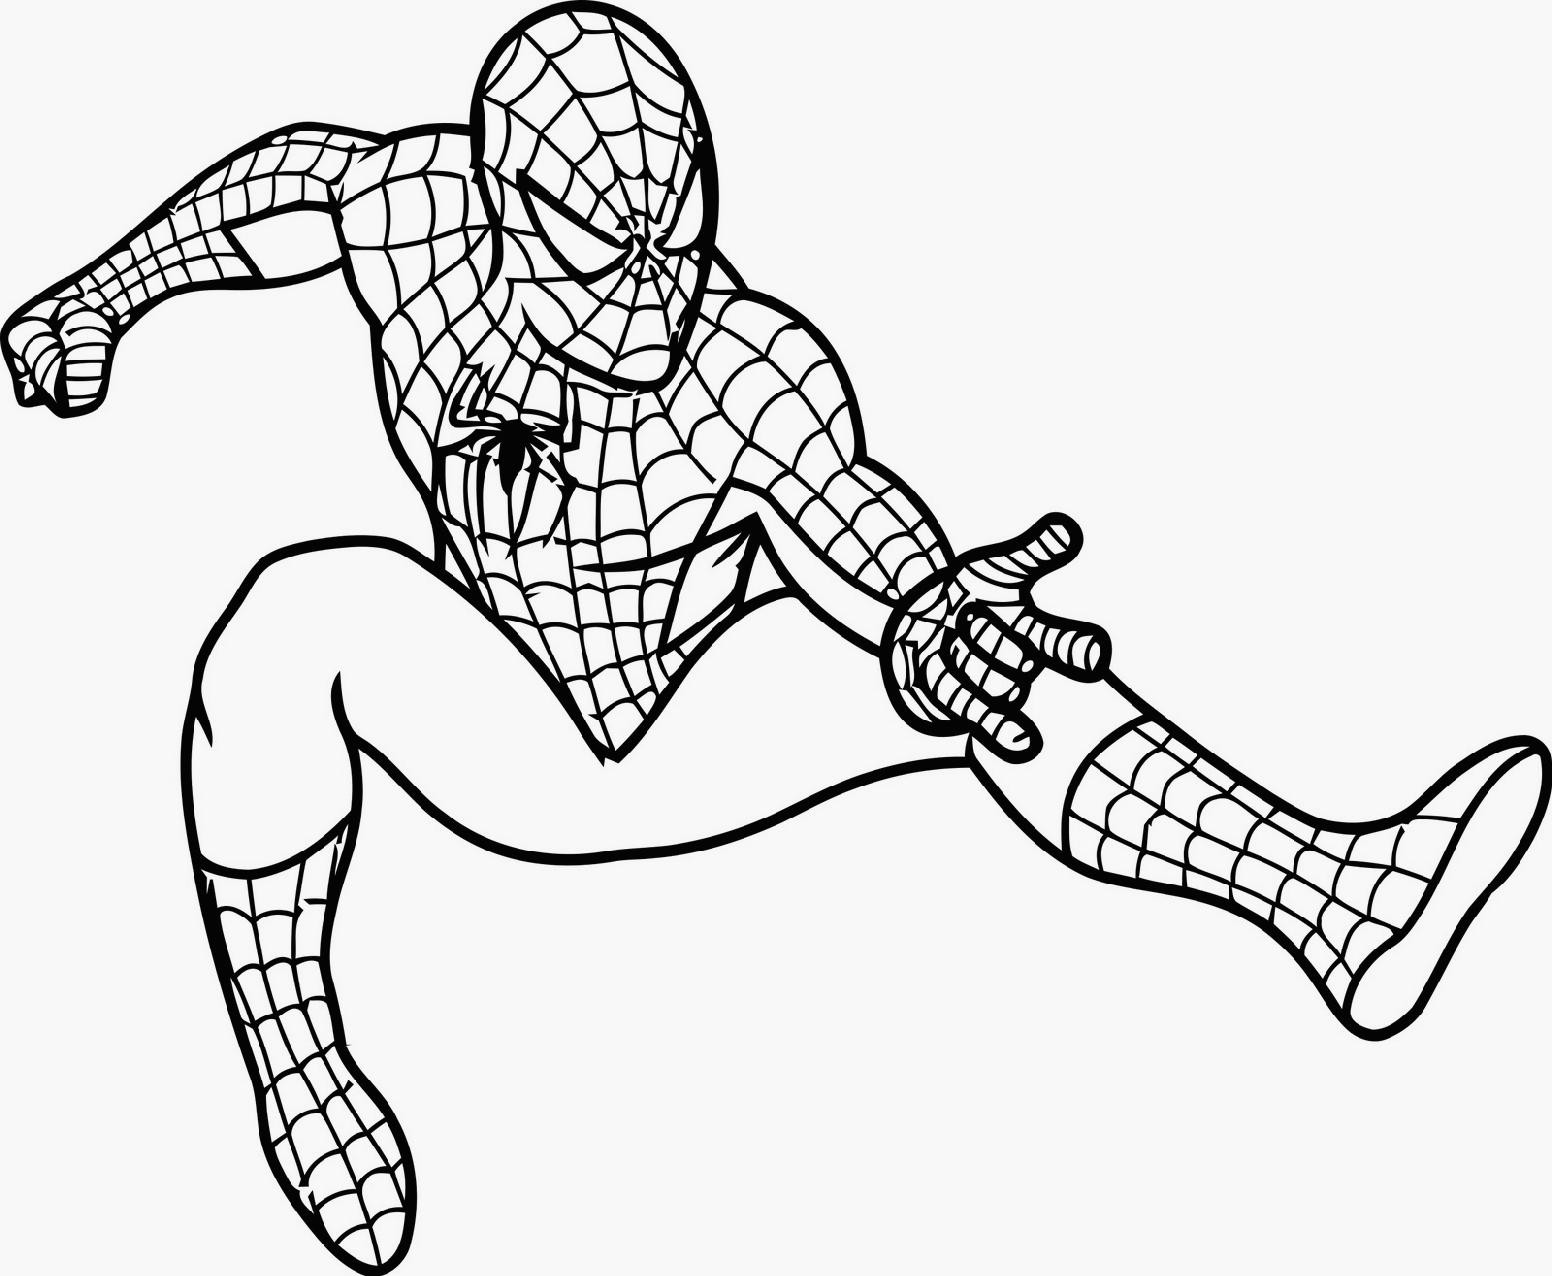 Kids Coloring Pages Performing Arts Boys  Free Superman Logo Coloring Pages Download Free Clip Art